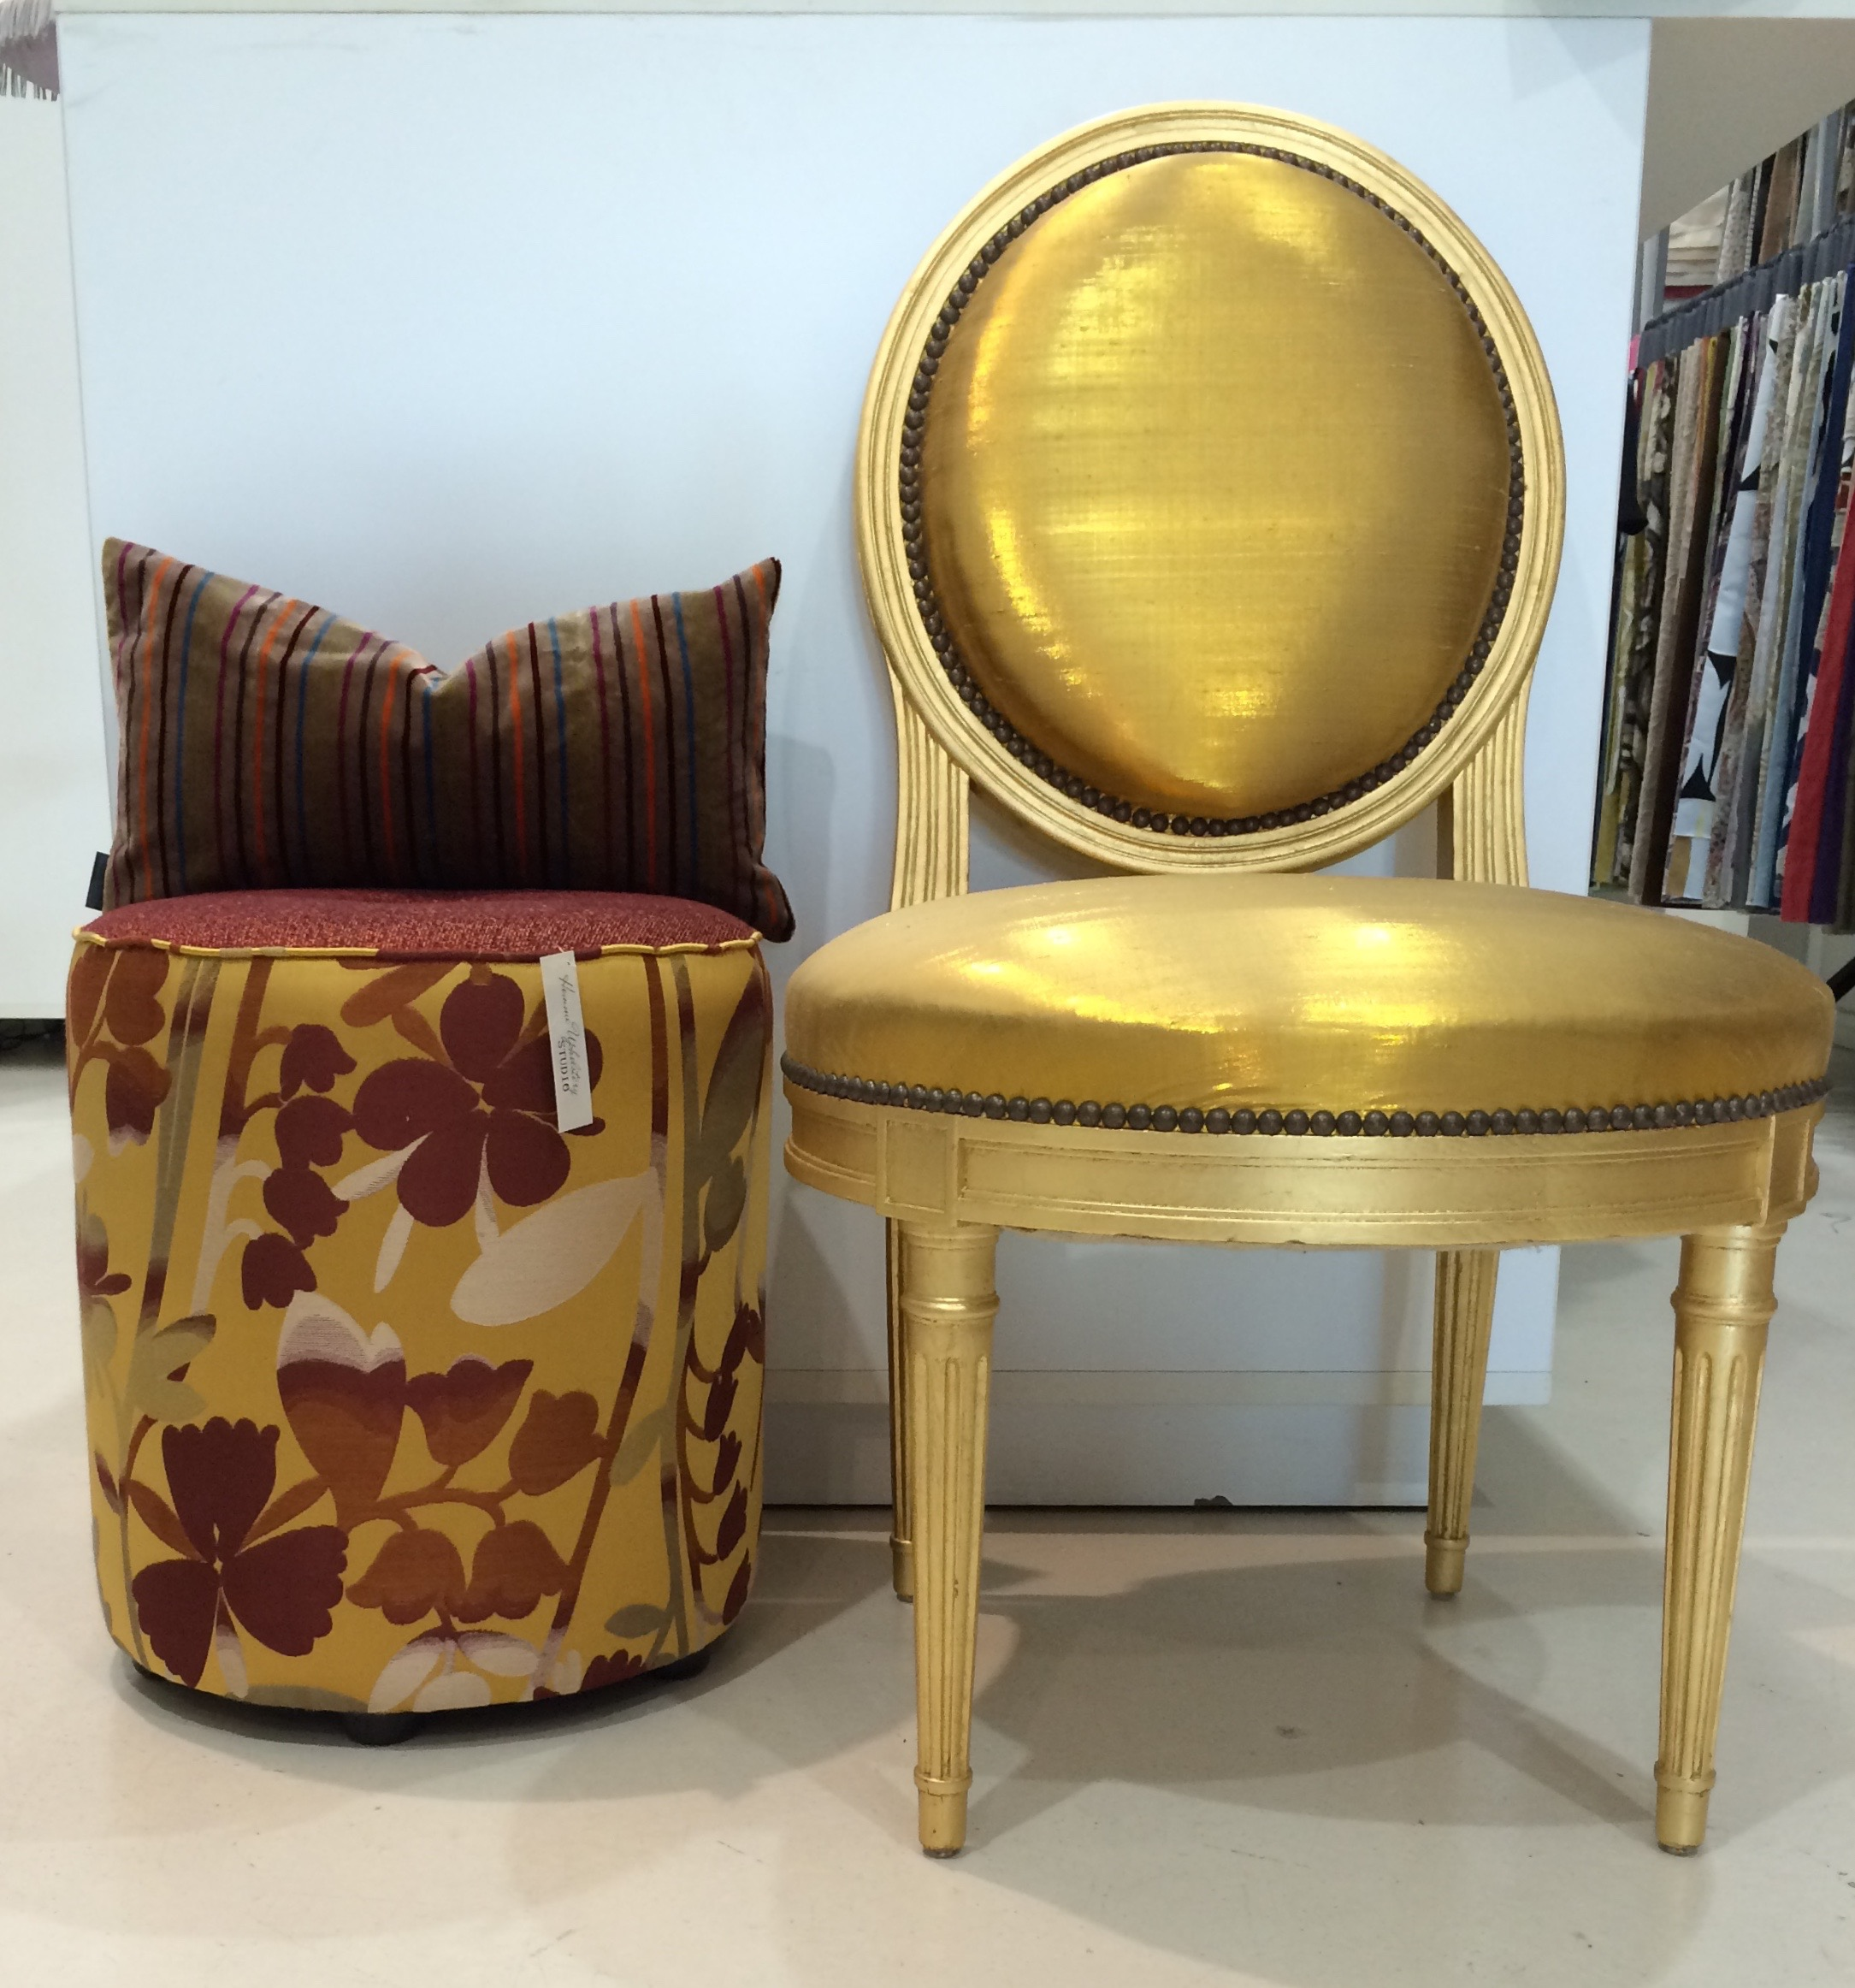 Rubelli Custom cushion and Ottoman.